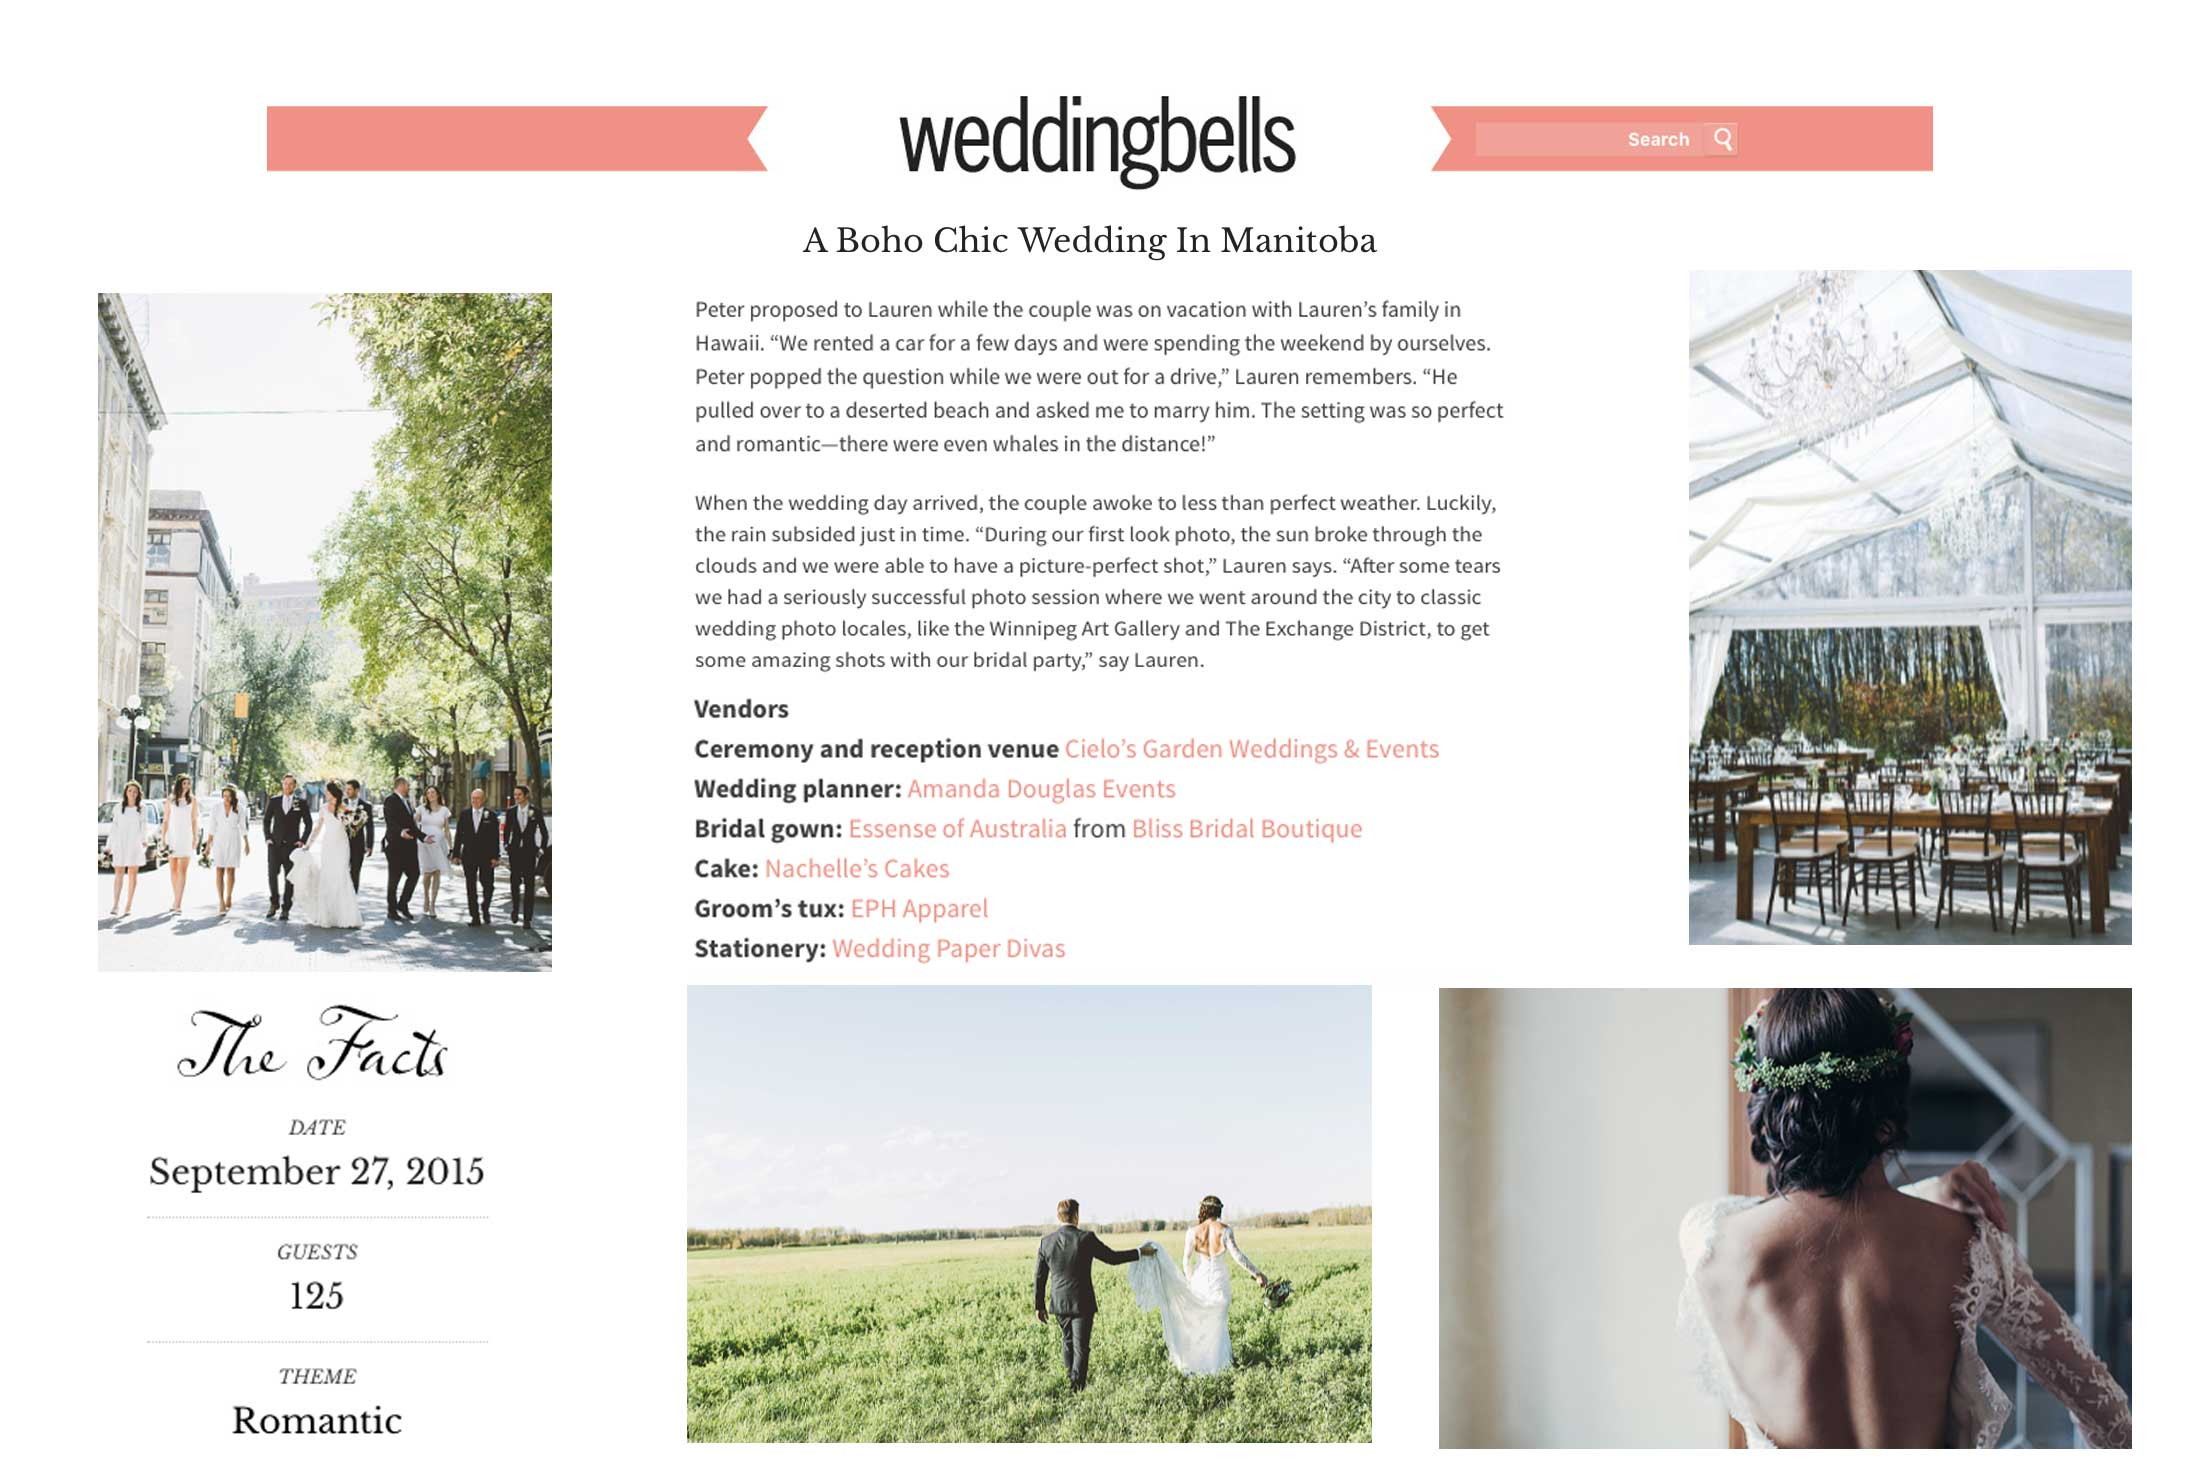 Winnipeg Wedding Planner and Inspiration Feature: Wedding Bells